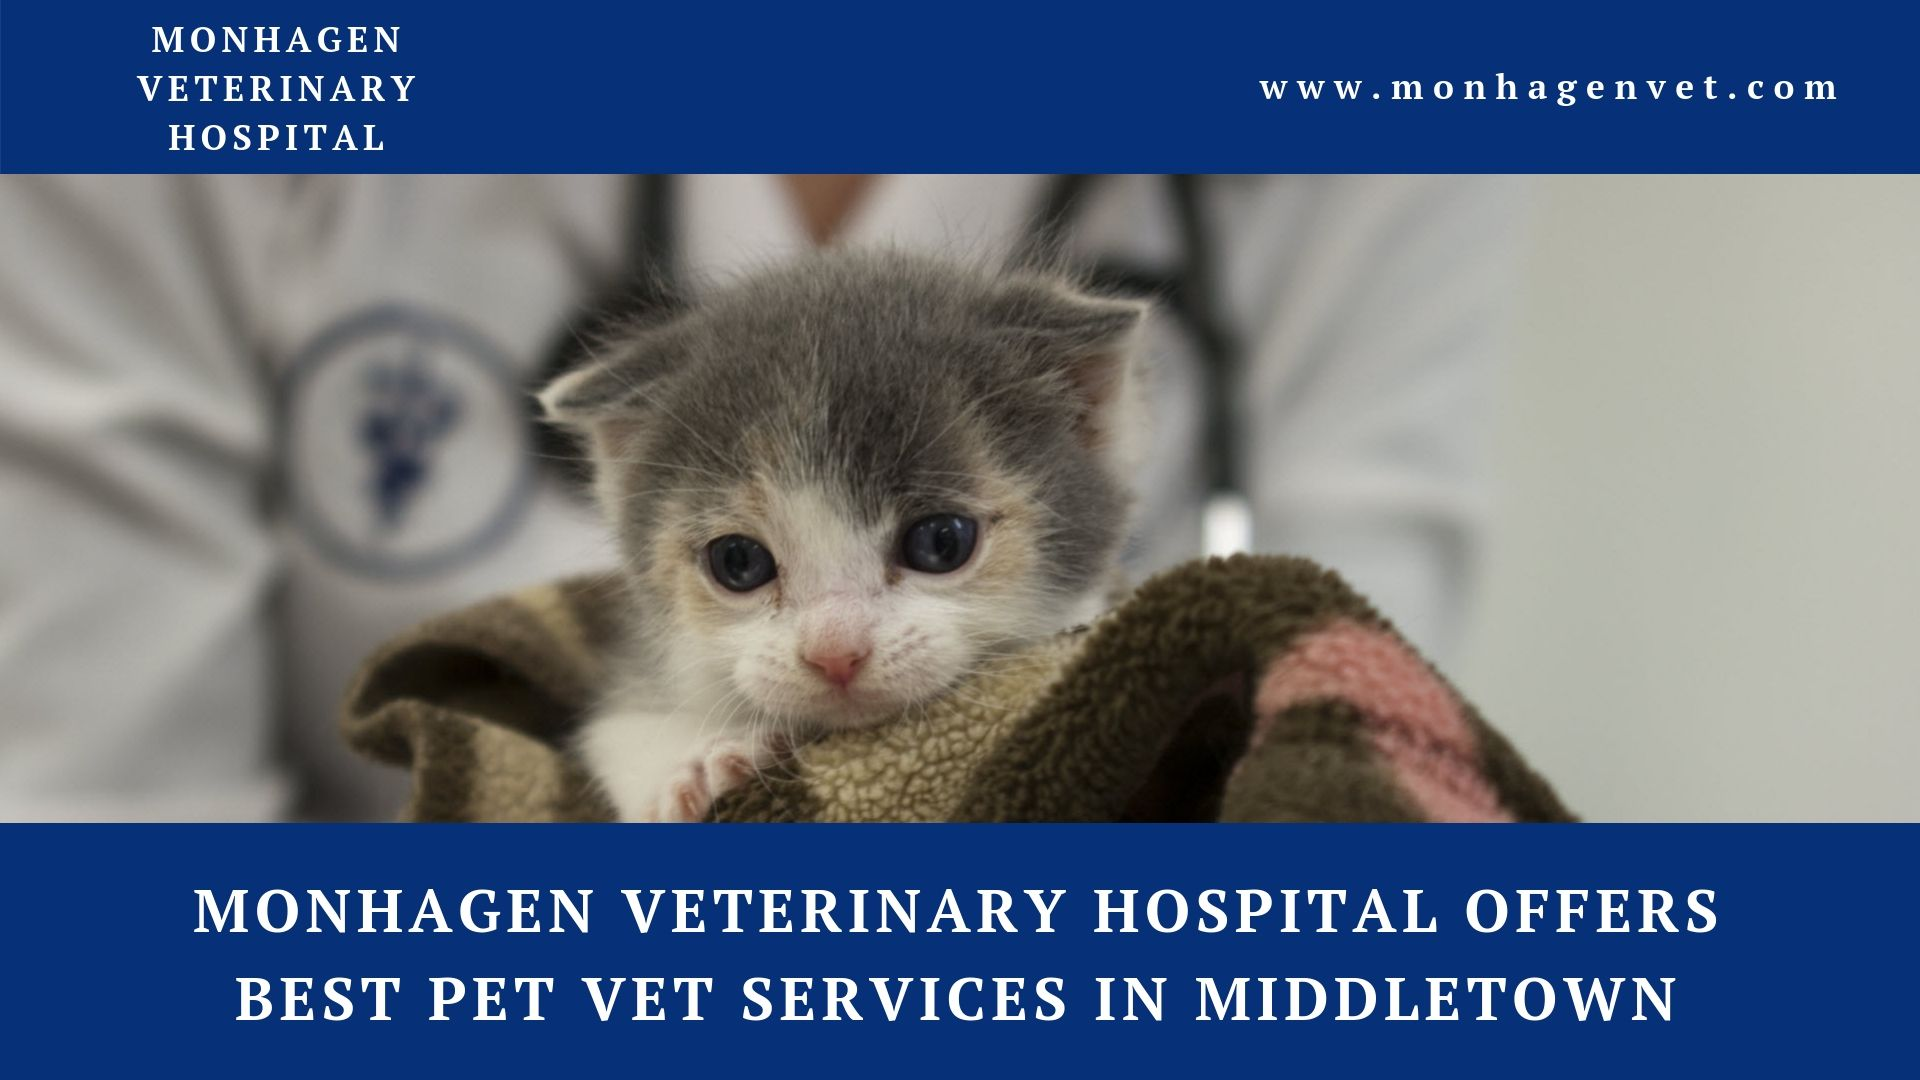 Find The Best Pet Vet Services In Middletown At Monhagen Veterinary Hospital The Highly Experienced Staff Provide The Compassionate Care With Images Pet Vet Dog Spay Pets